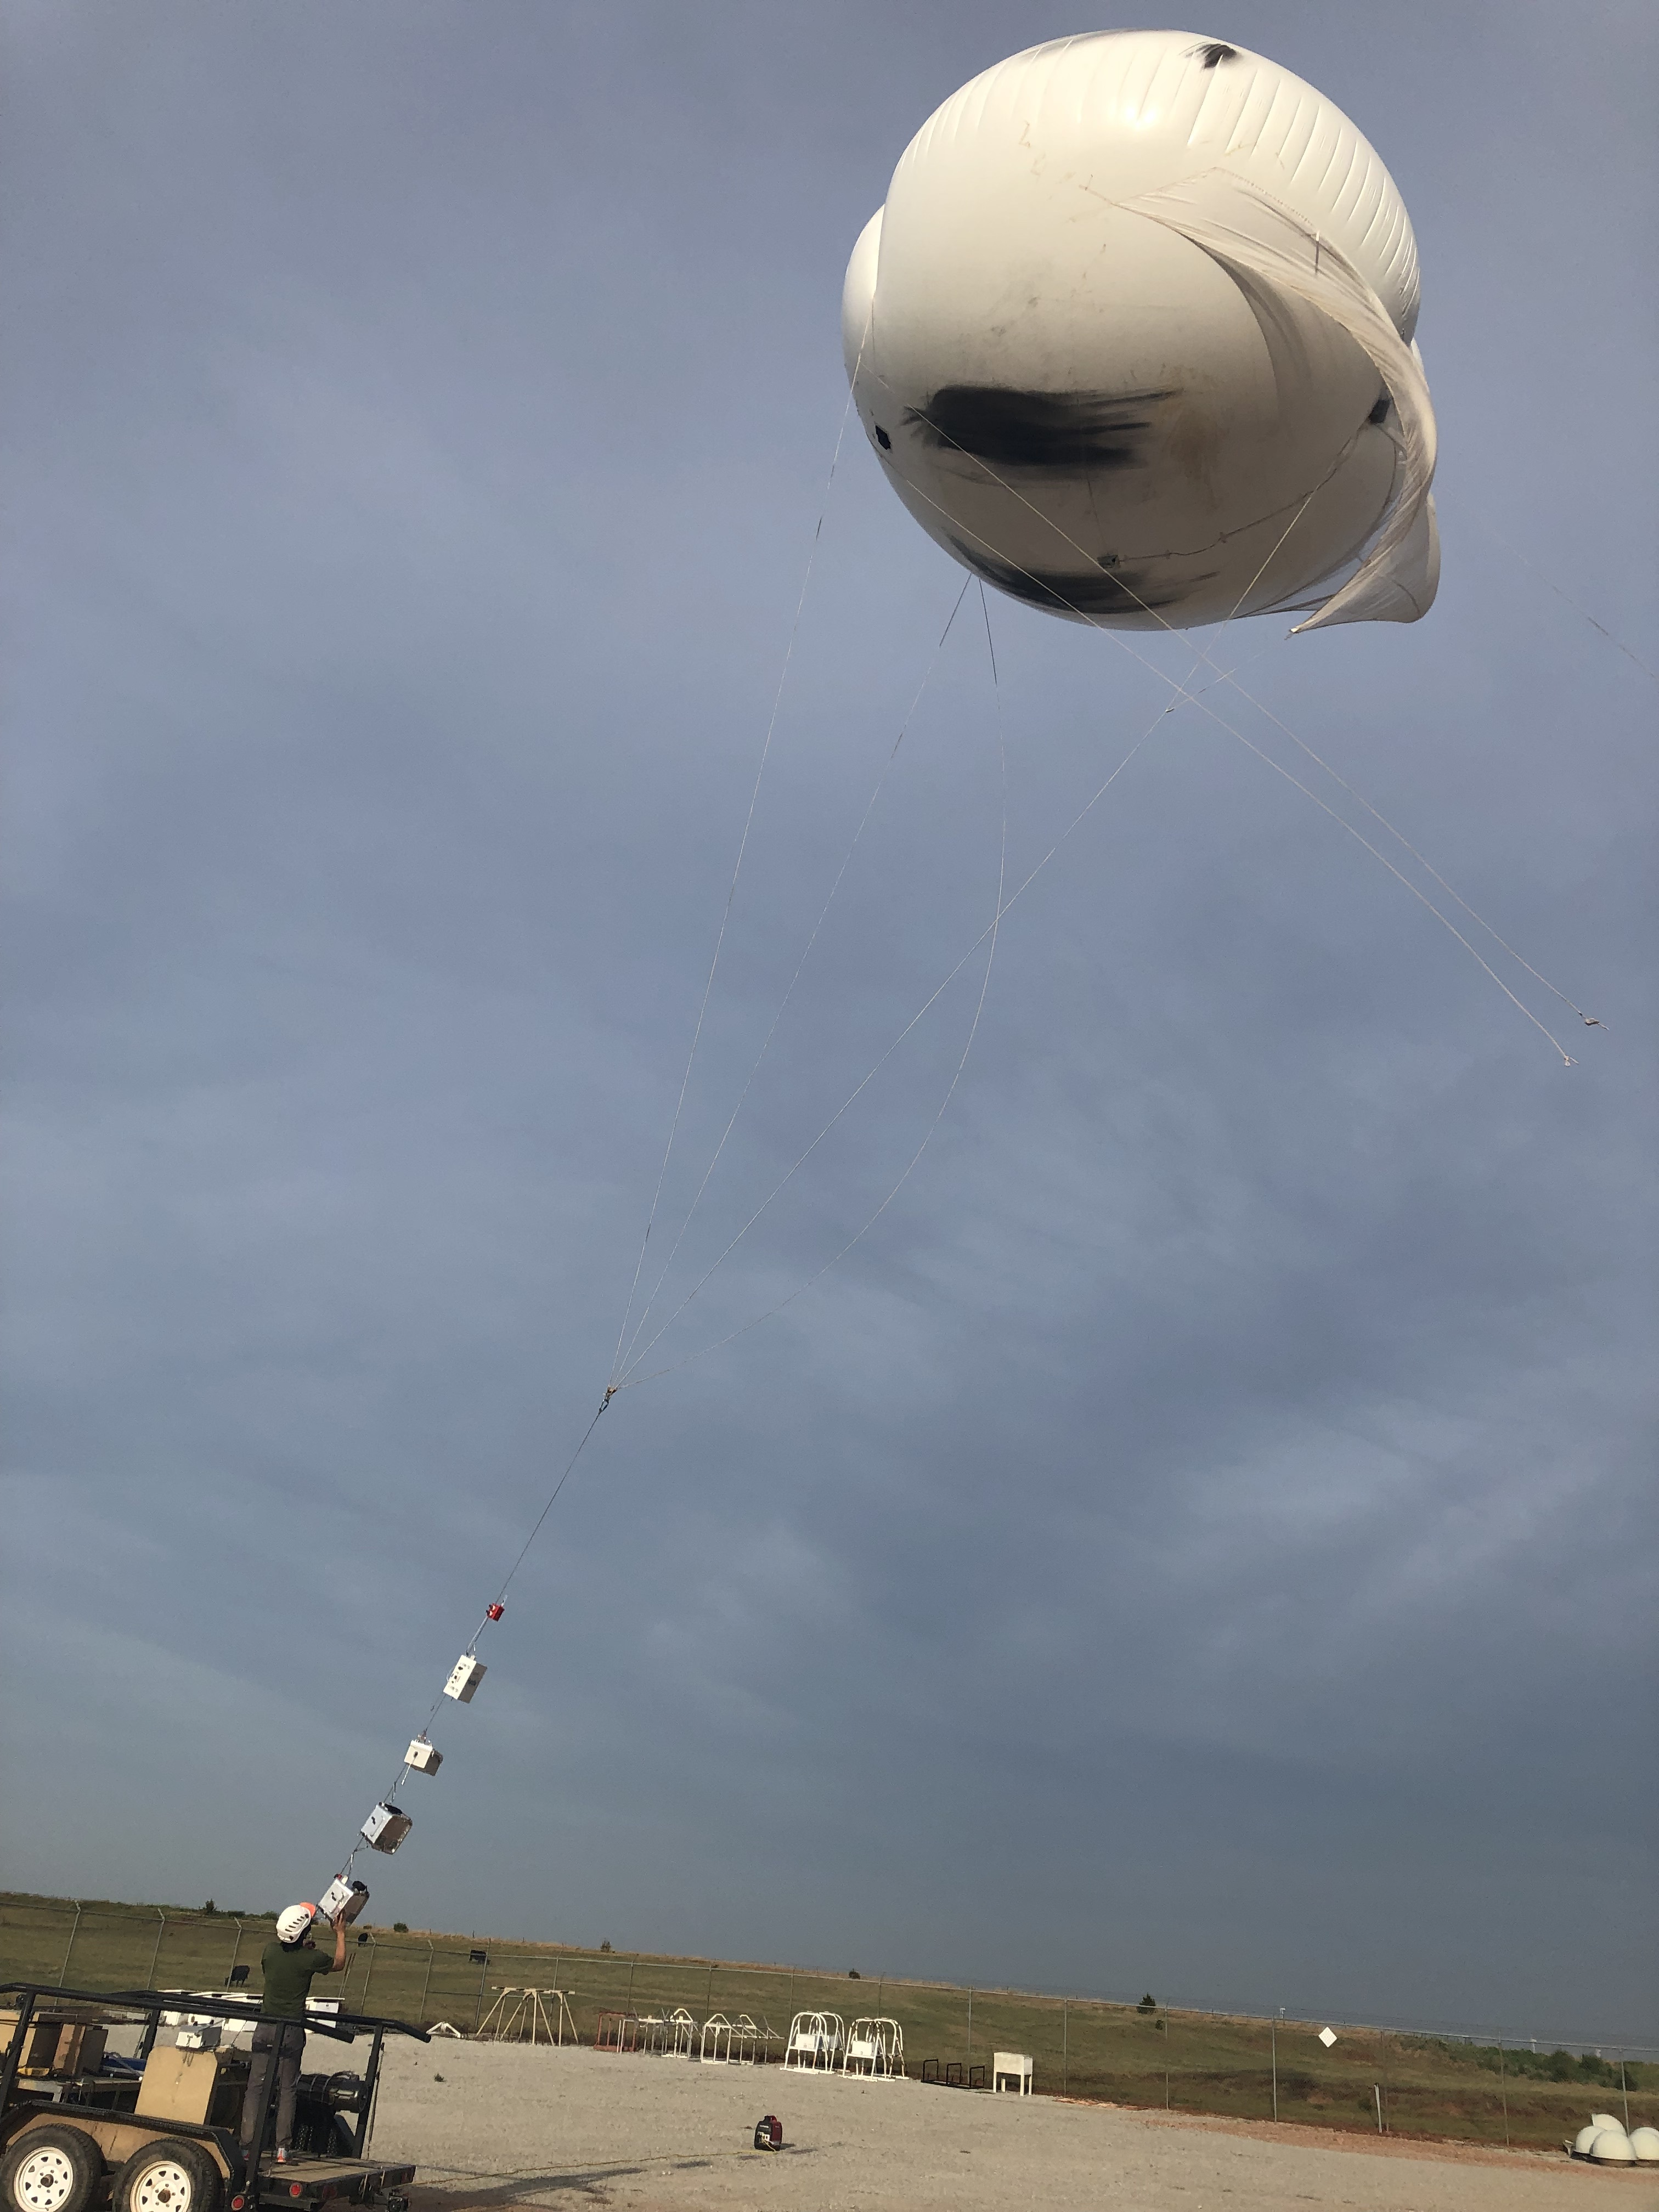 Tethered balloon at Southern Great Plains